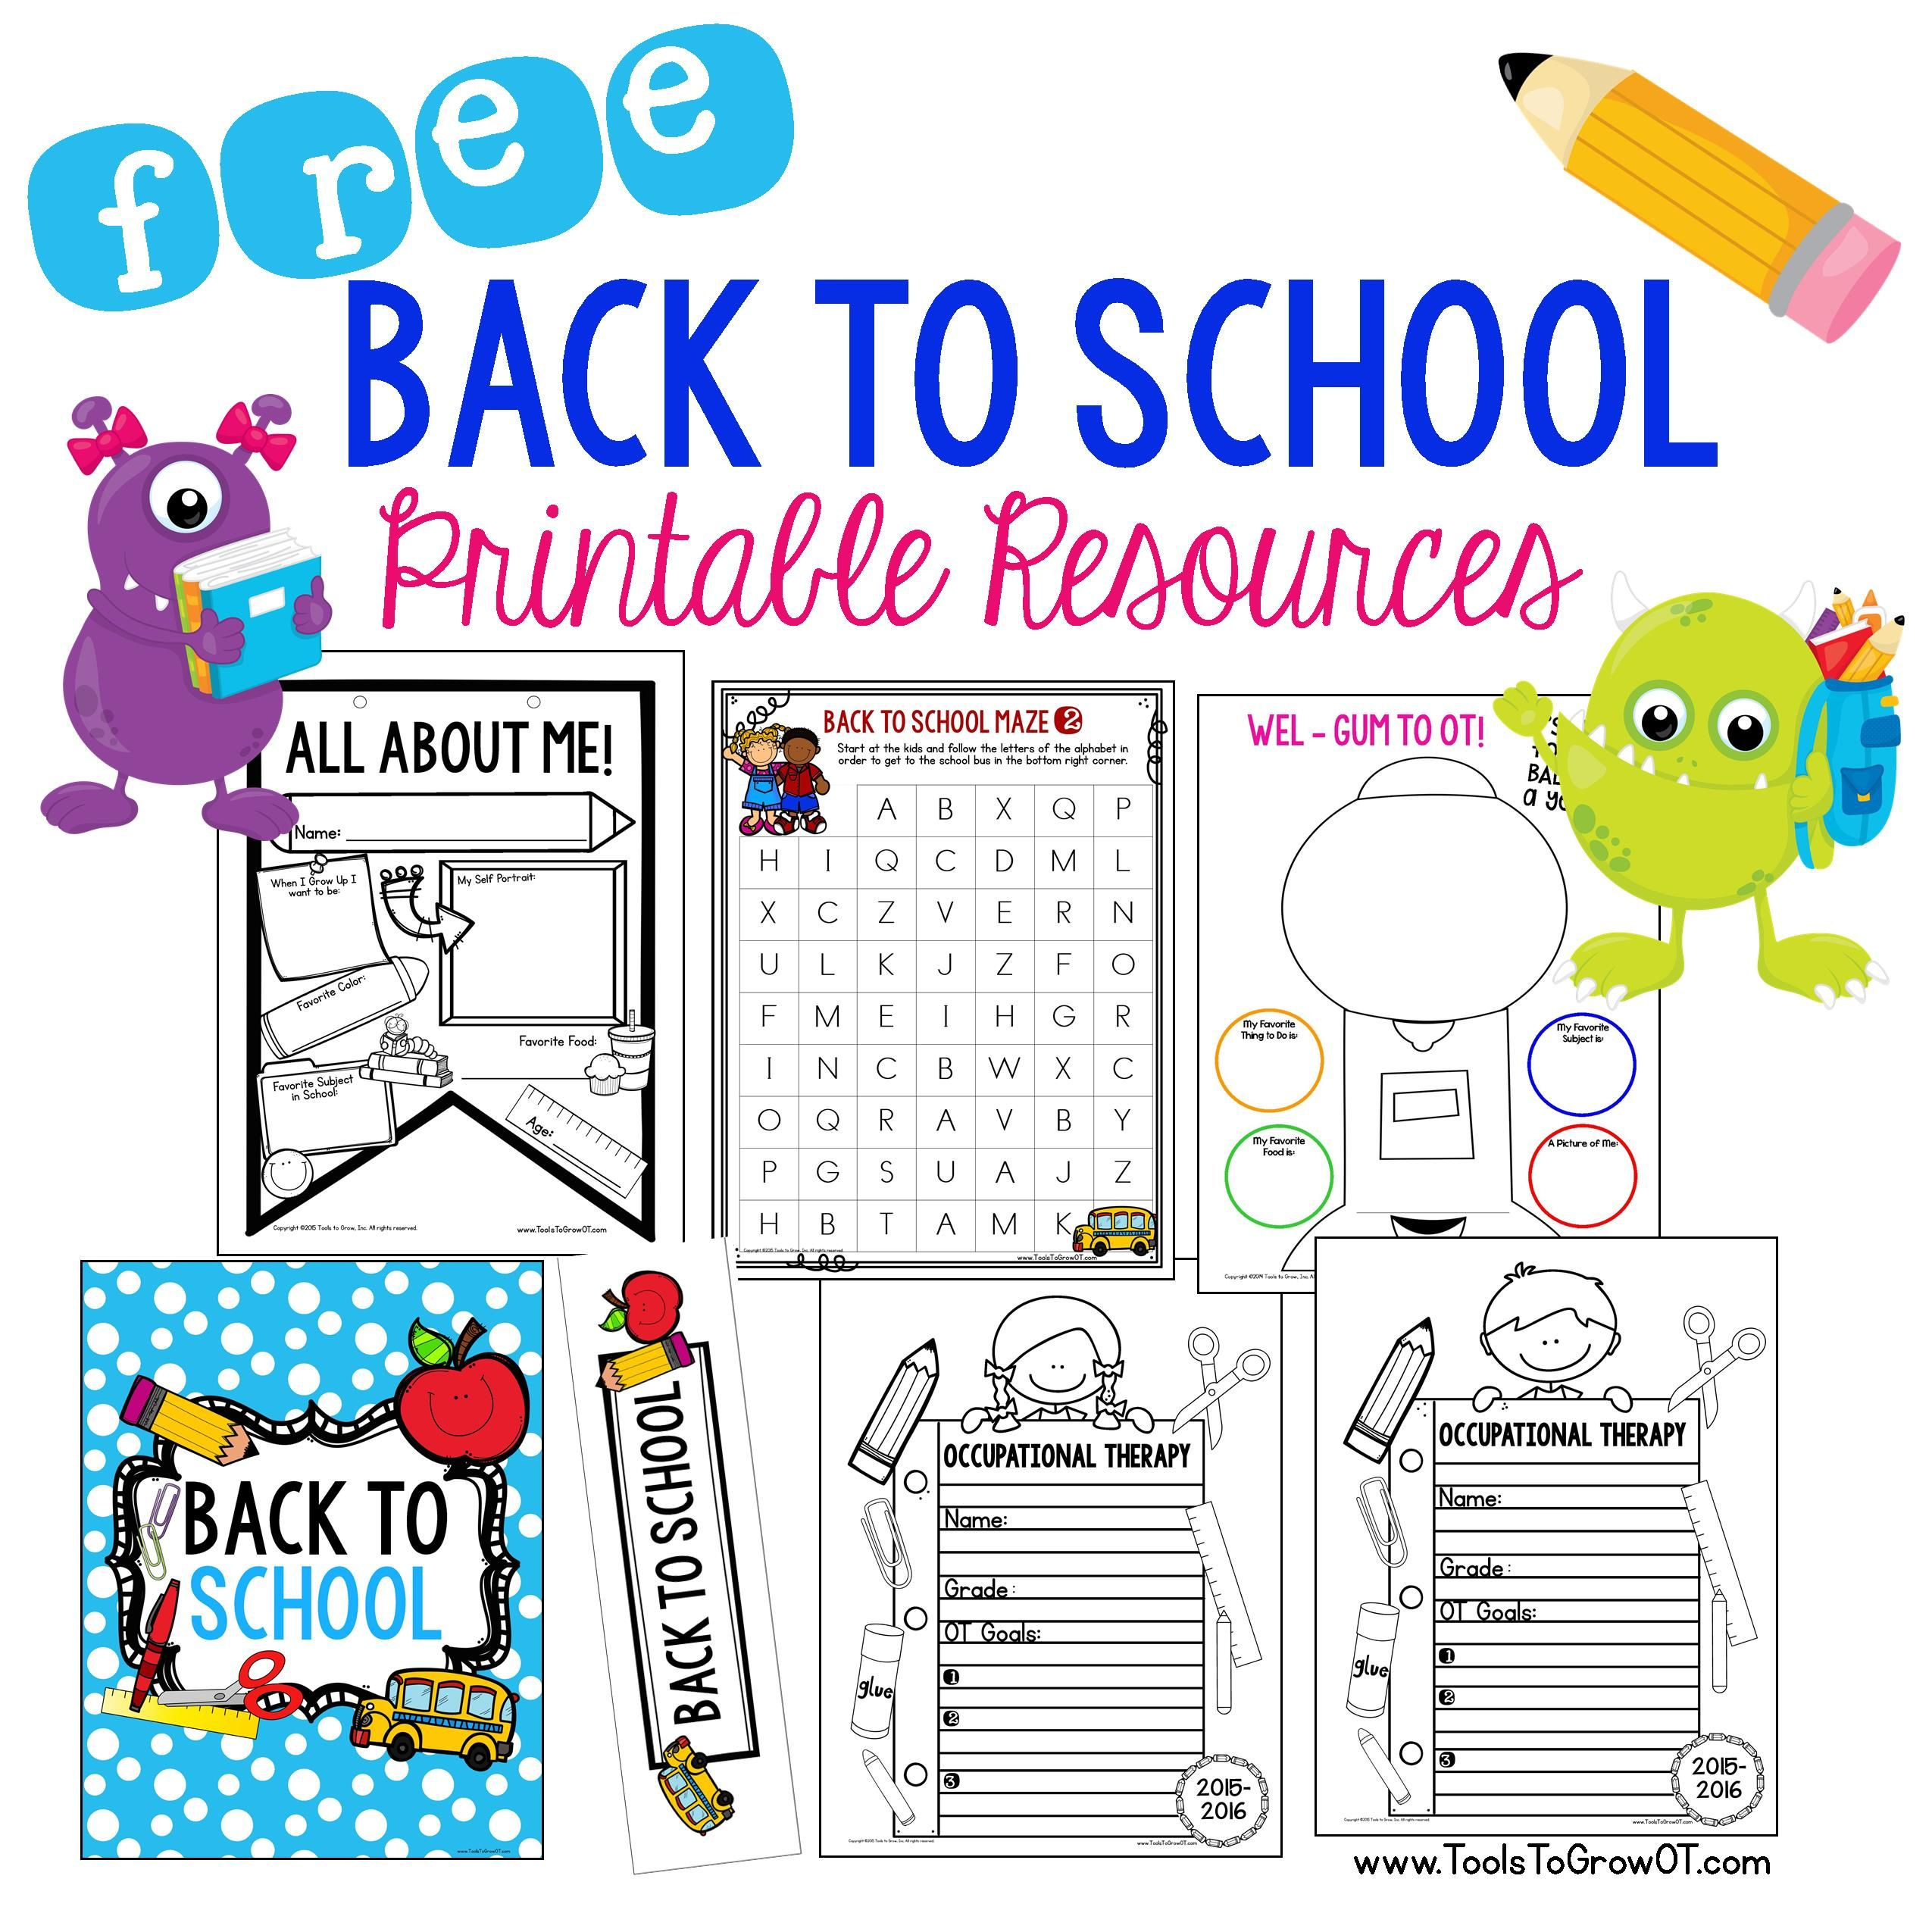 Free Back To School Printable Resources